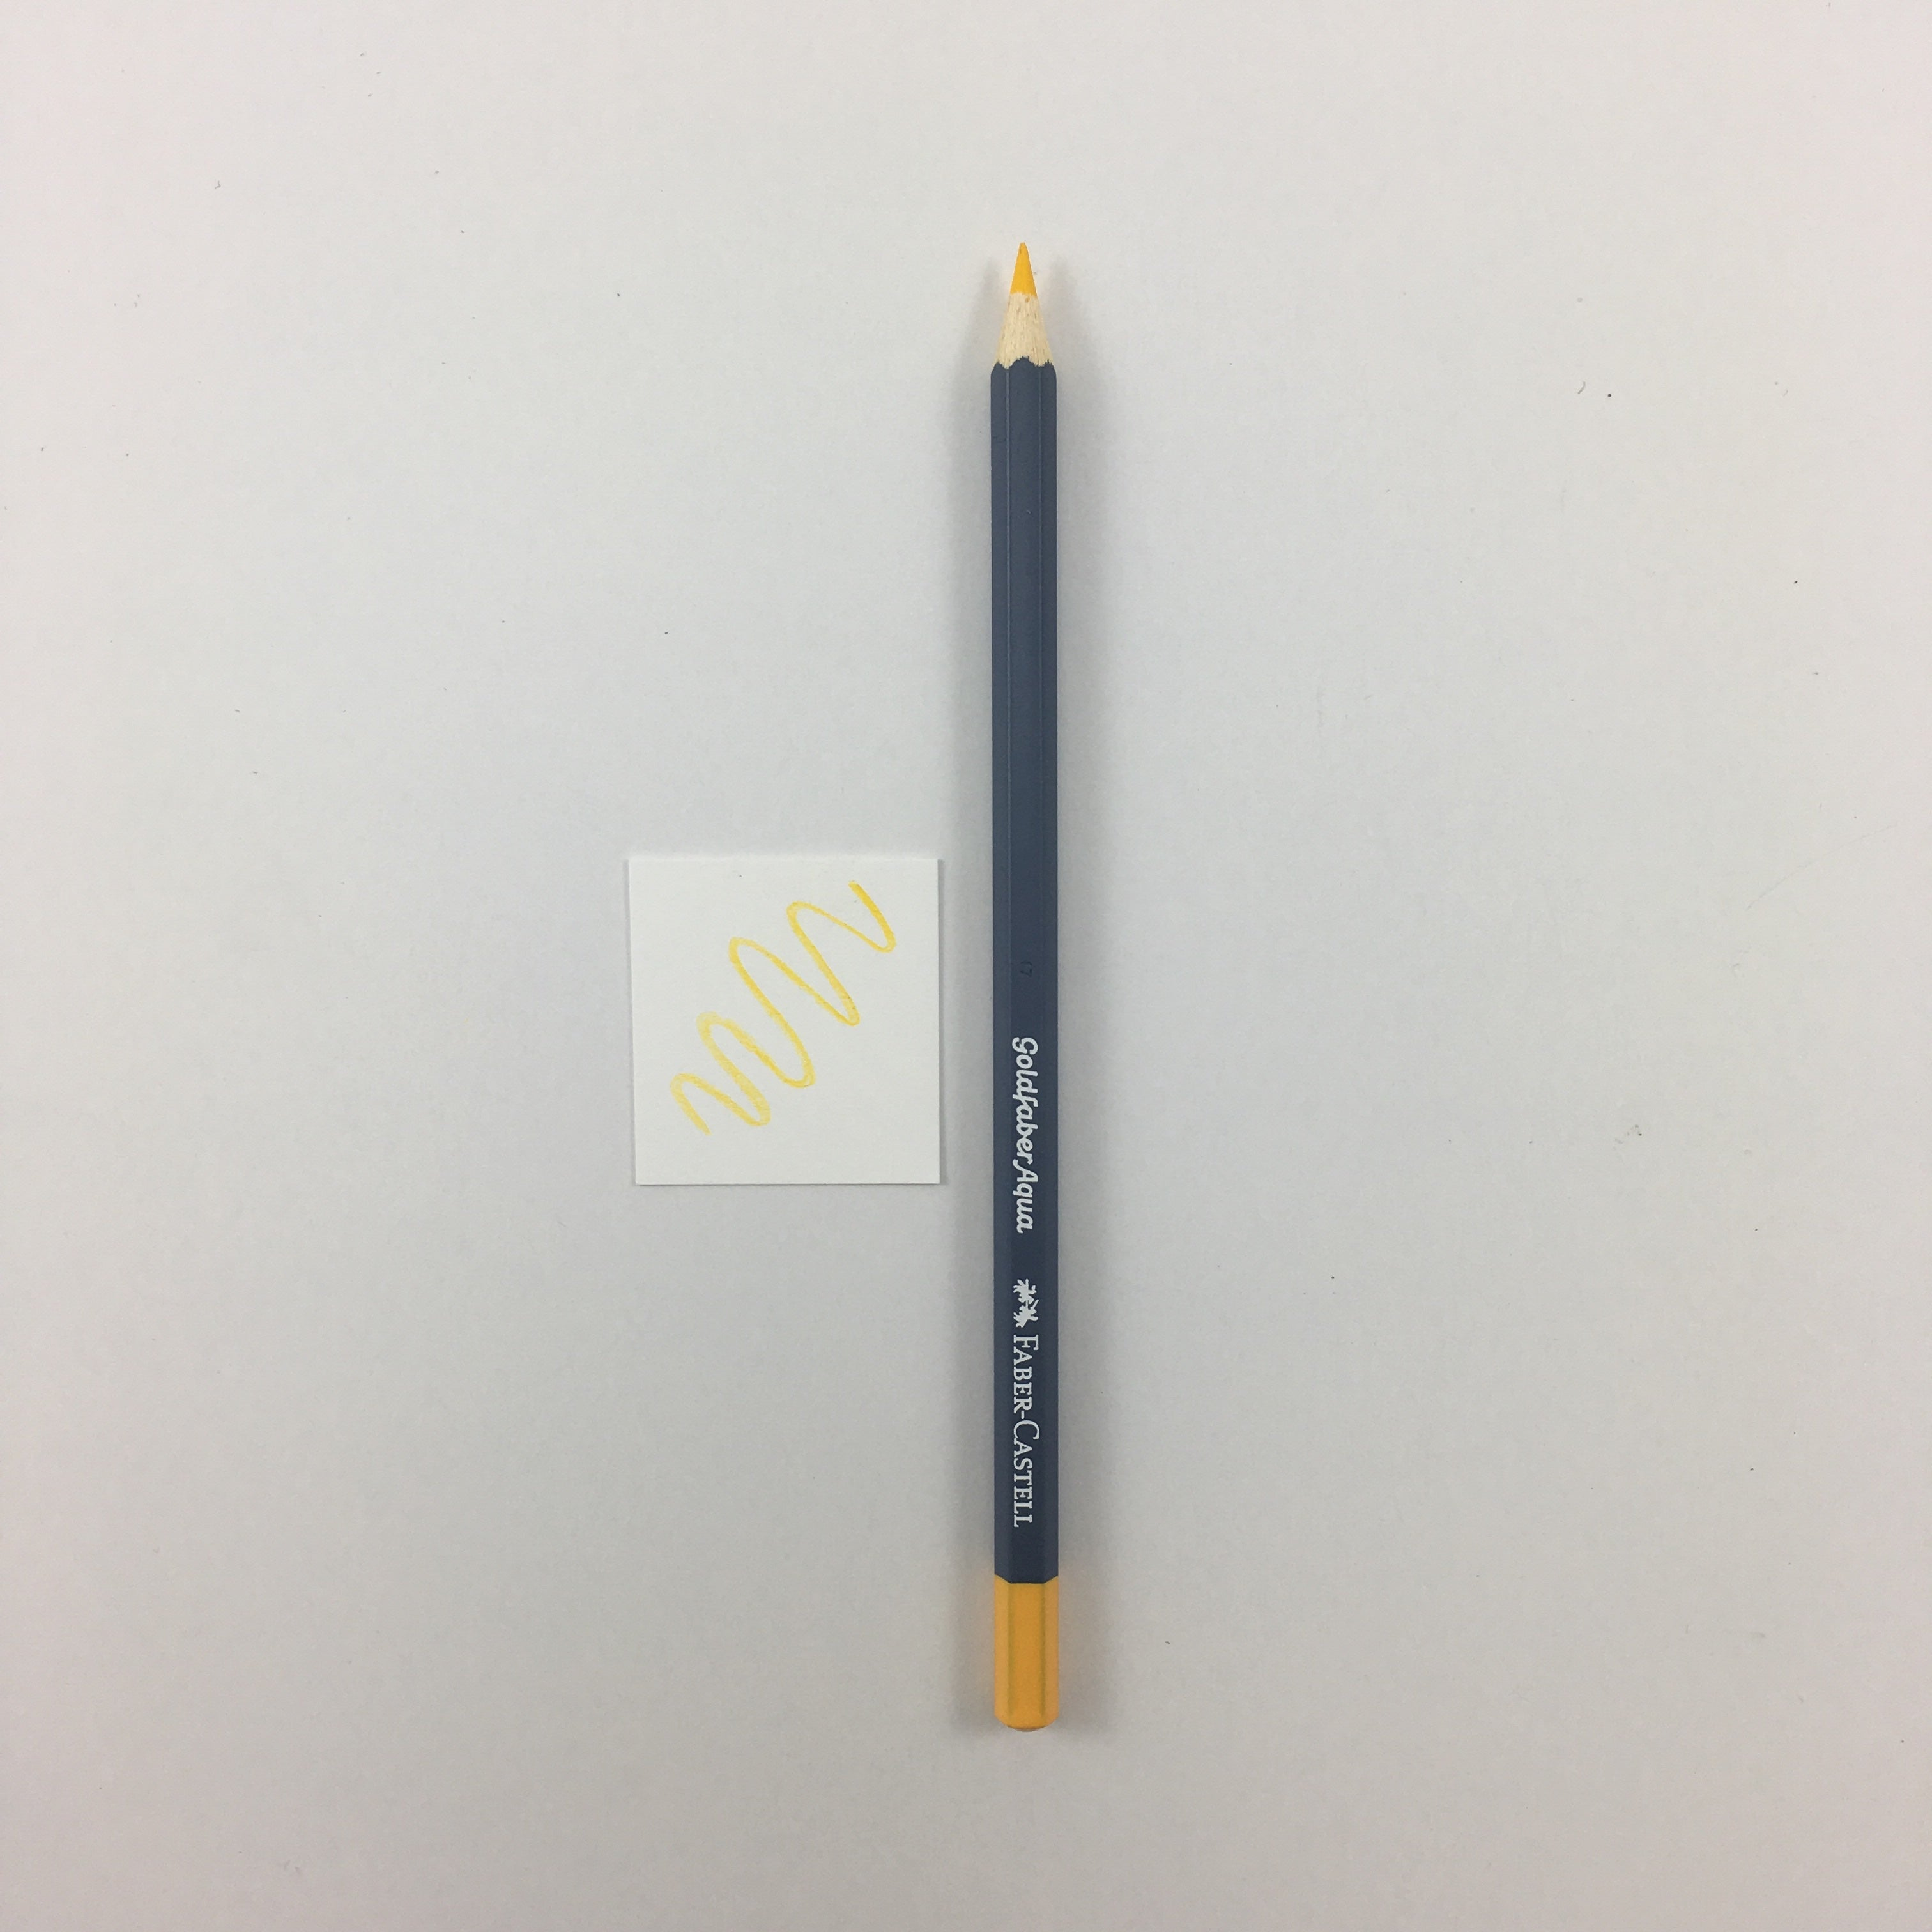 Faber-Castell Goldfaber Aqua Watercolor Pencils - Individuals - 109 - Dark Chrome Yellow by Faber-Castell - K. A. Artist Shop